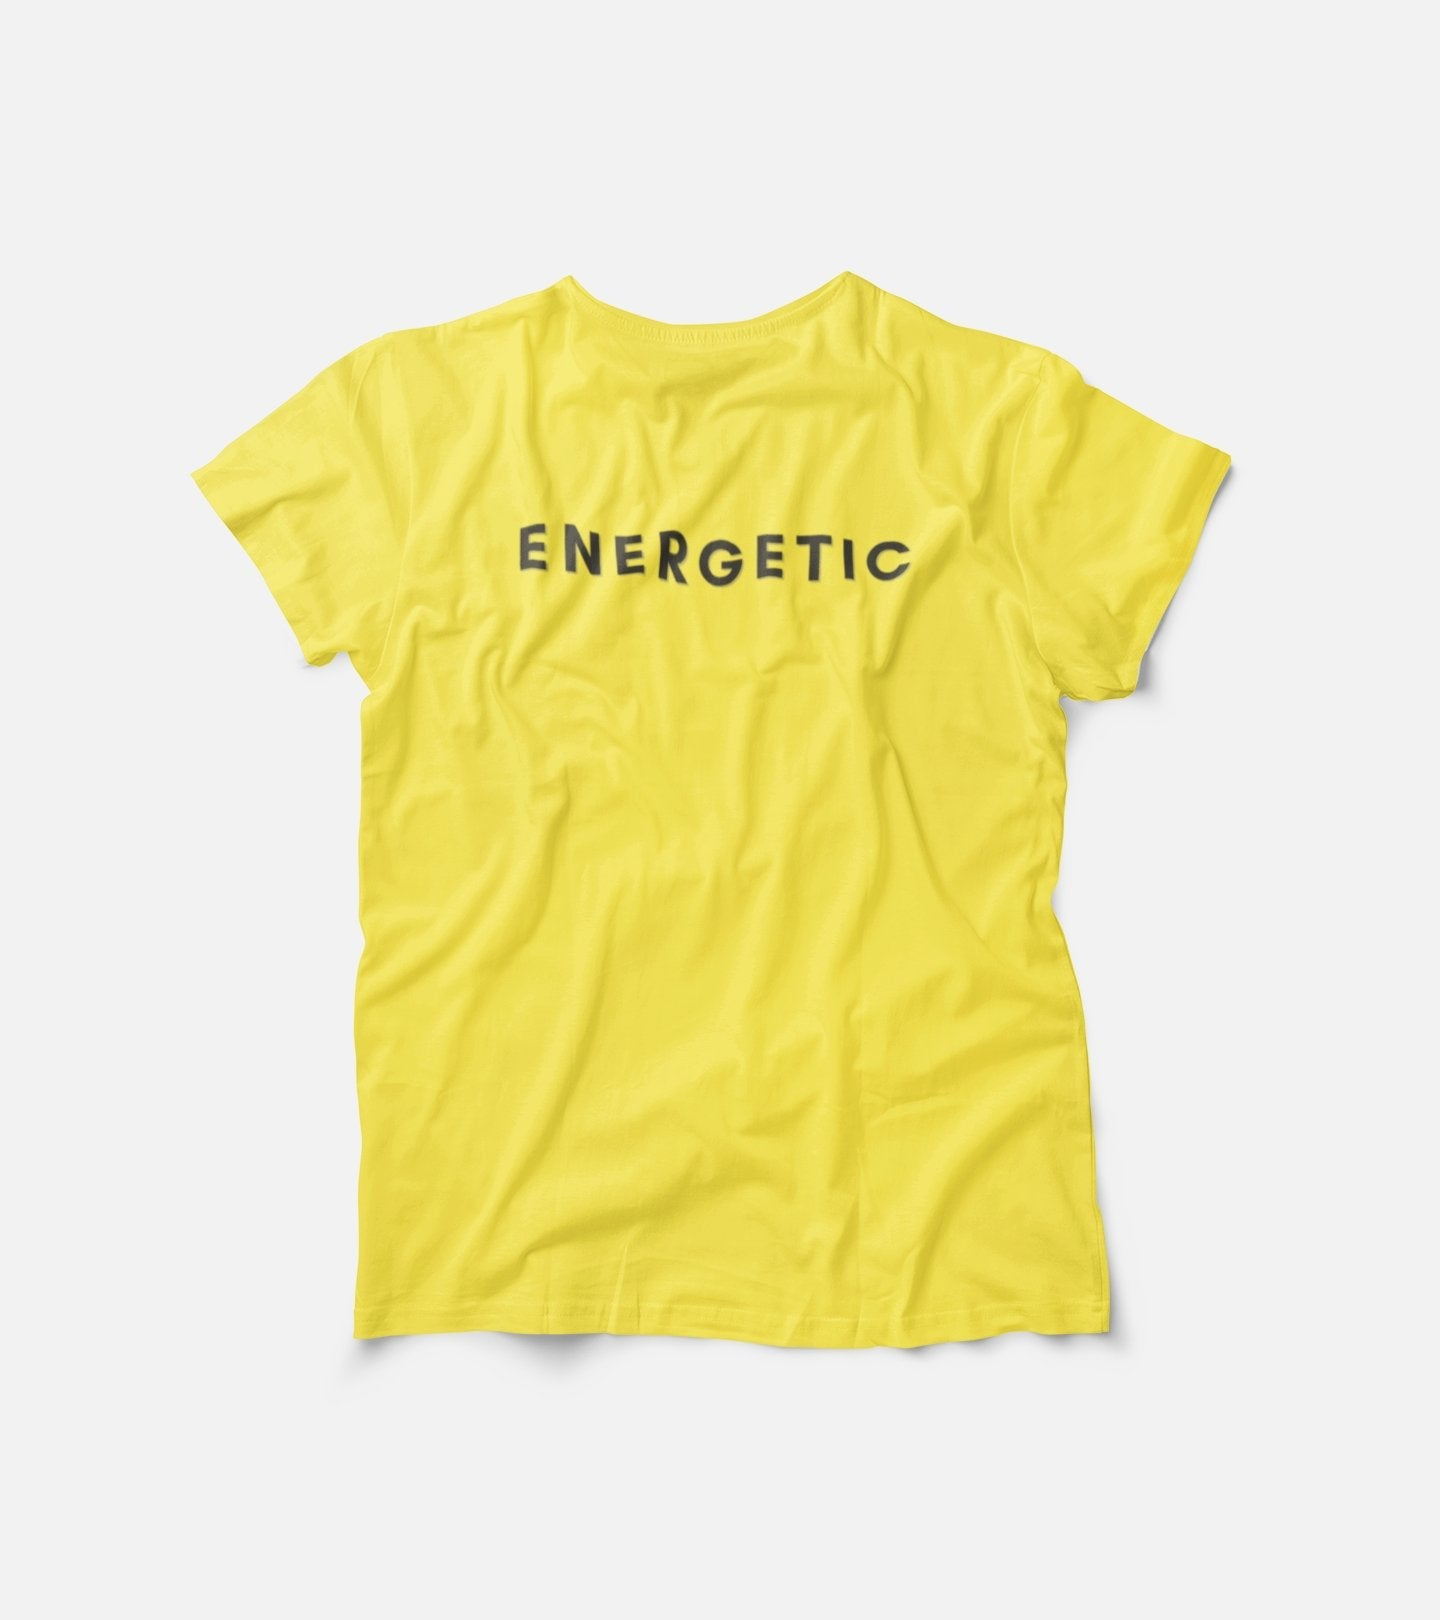 Energetic Mood T-Shirt - Dekh.com